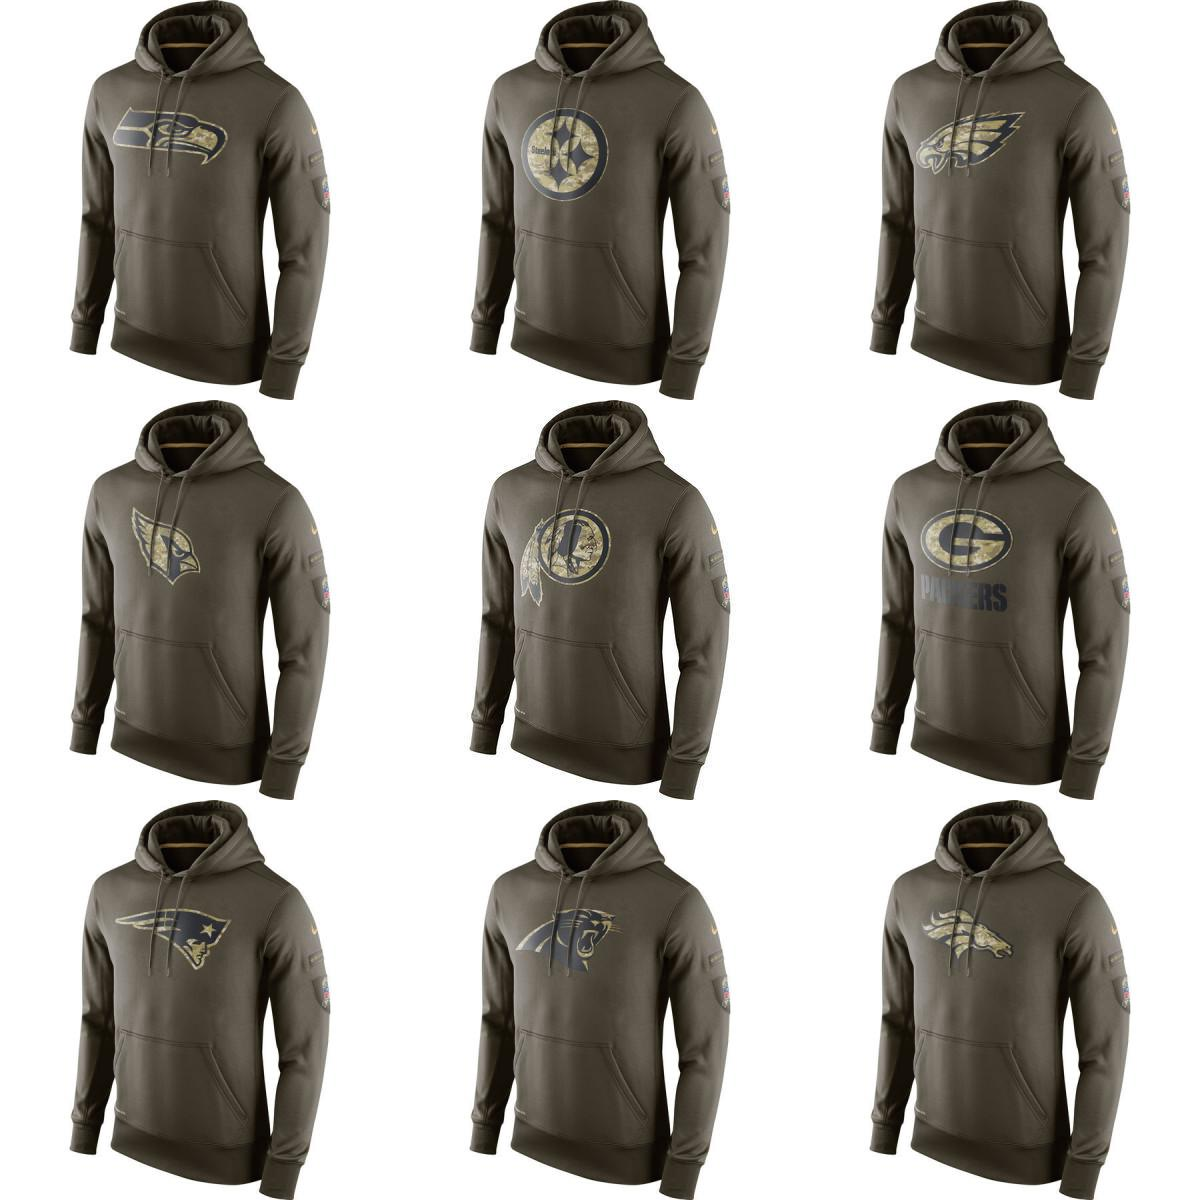 innovative design 80bd5 81b13 Panthers Hoodie Fashion Designer Broncos Saints Packers Cardinals Eagles  Green Salute To Service Hoodies Sweatshirt Free Shipping